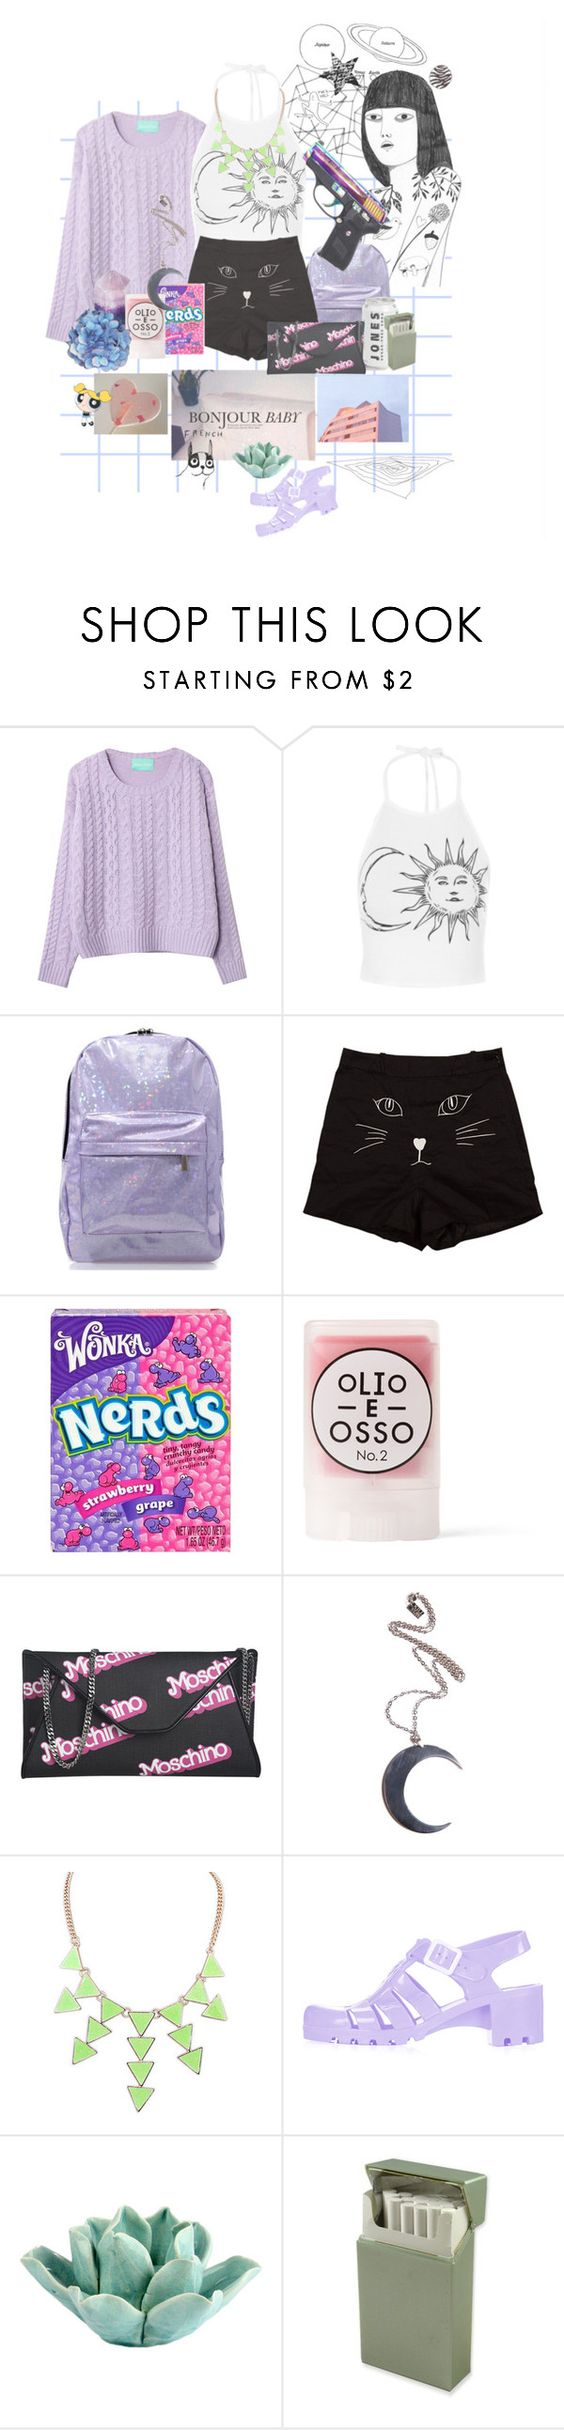 """Powerpuffer"" by teodora-teddy ❤ liked on Polyvore featuring Chicnova Fashion, River Island, Olio E Osso, Moschino, Kill Star, Topshop, HomArt and House by John Lewis"